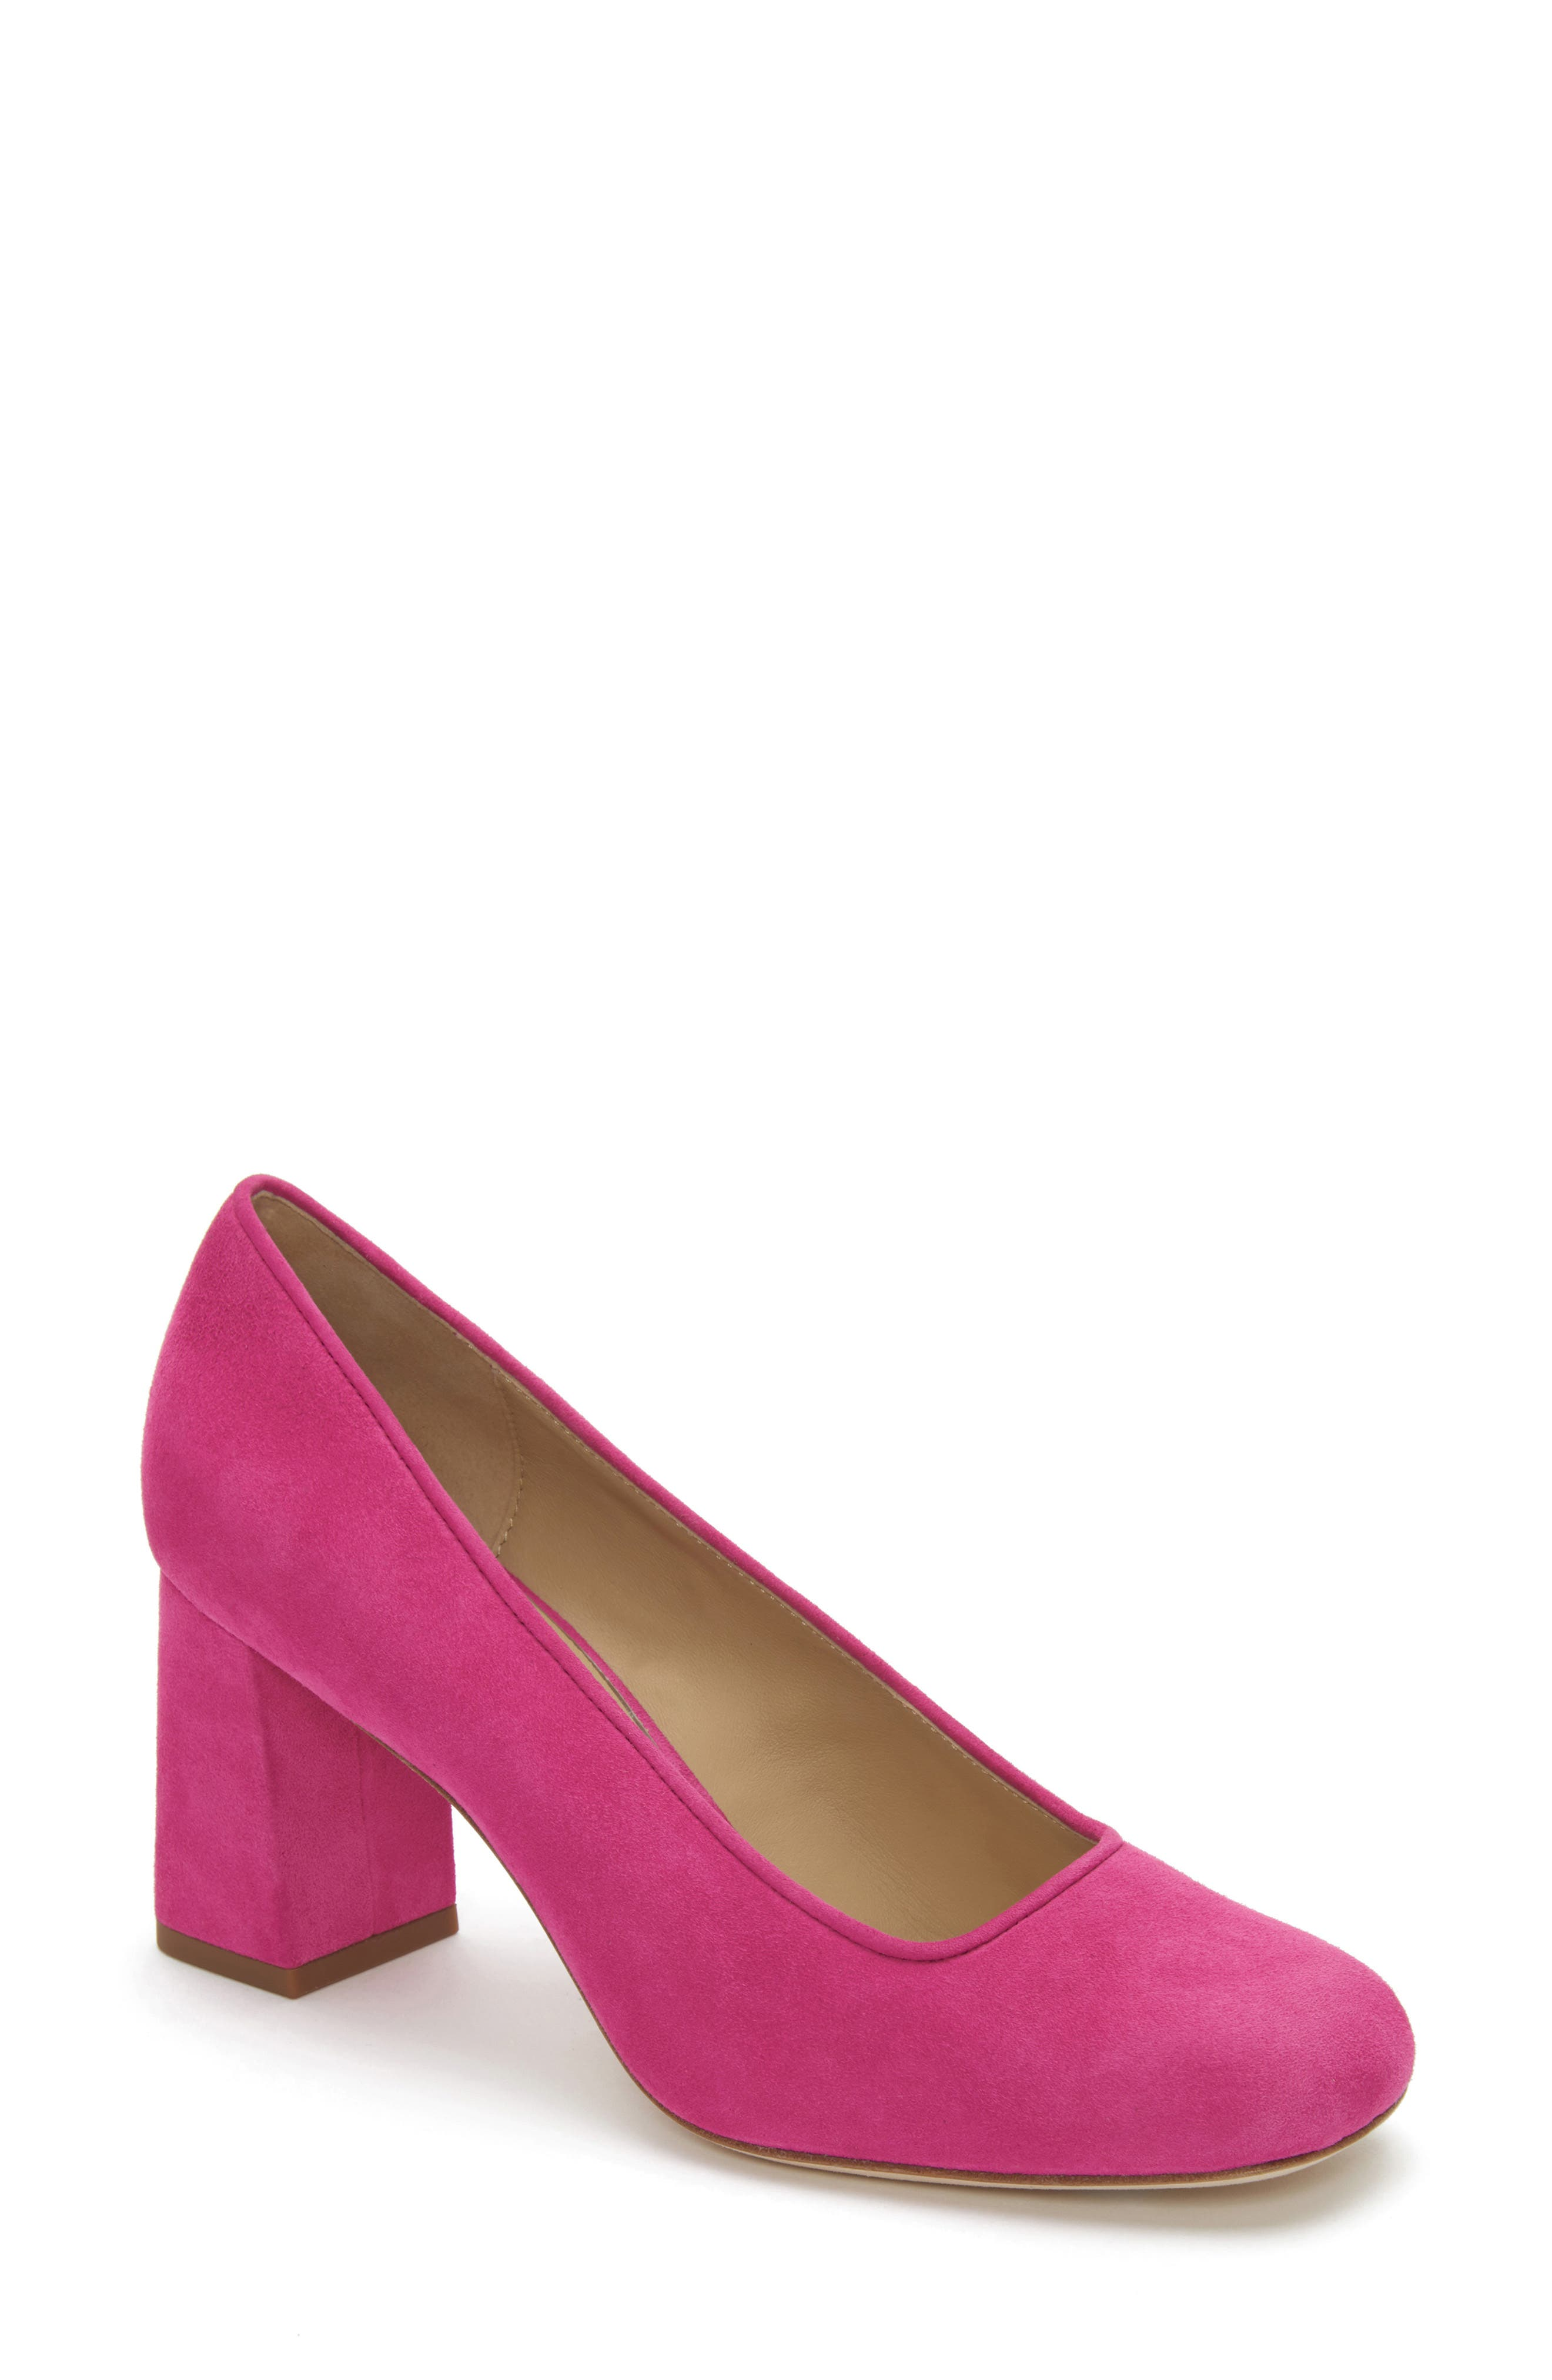 ETIENNE AIGNER Dylan Square Toe Pump in Pink Rose Suede